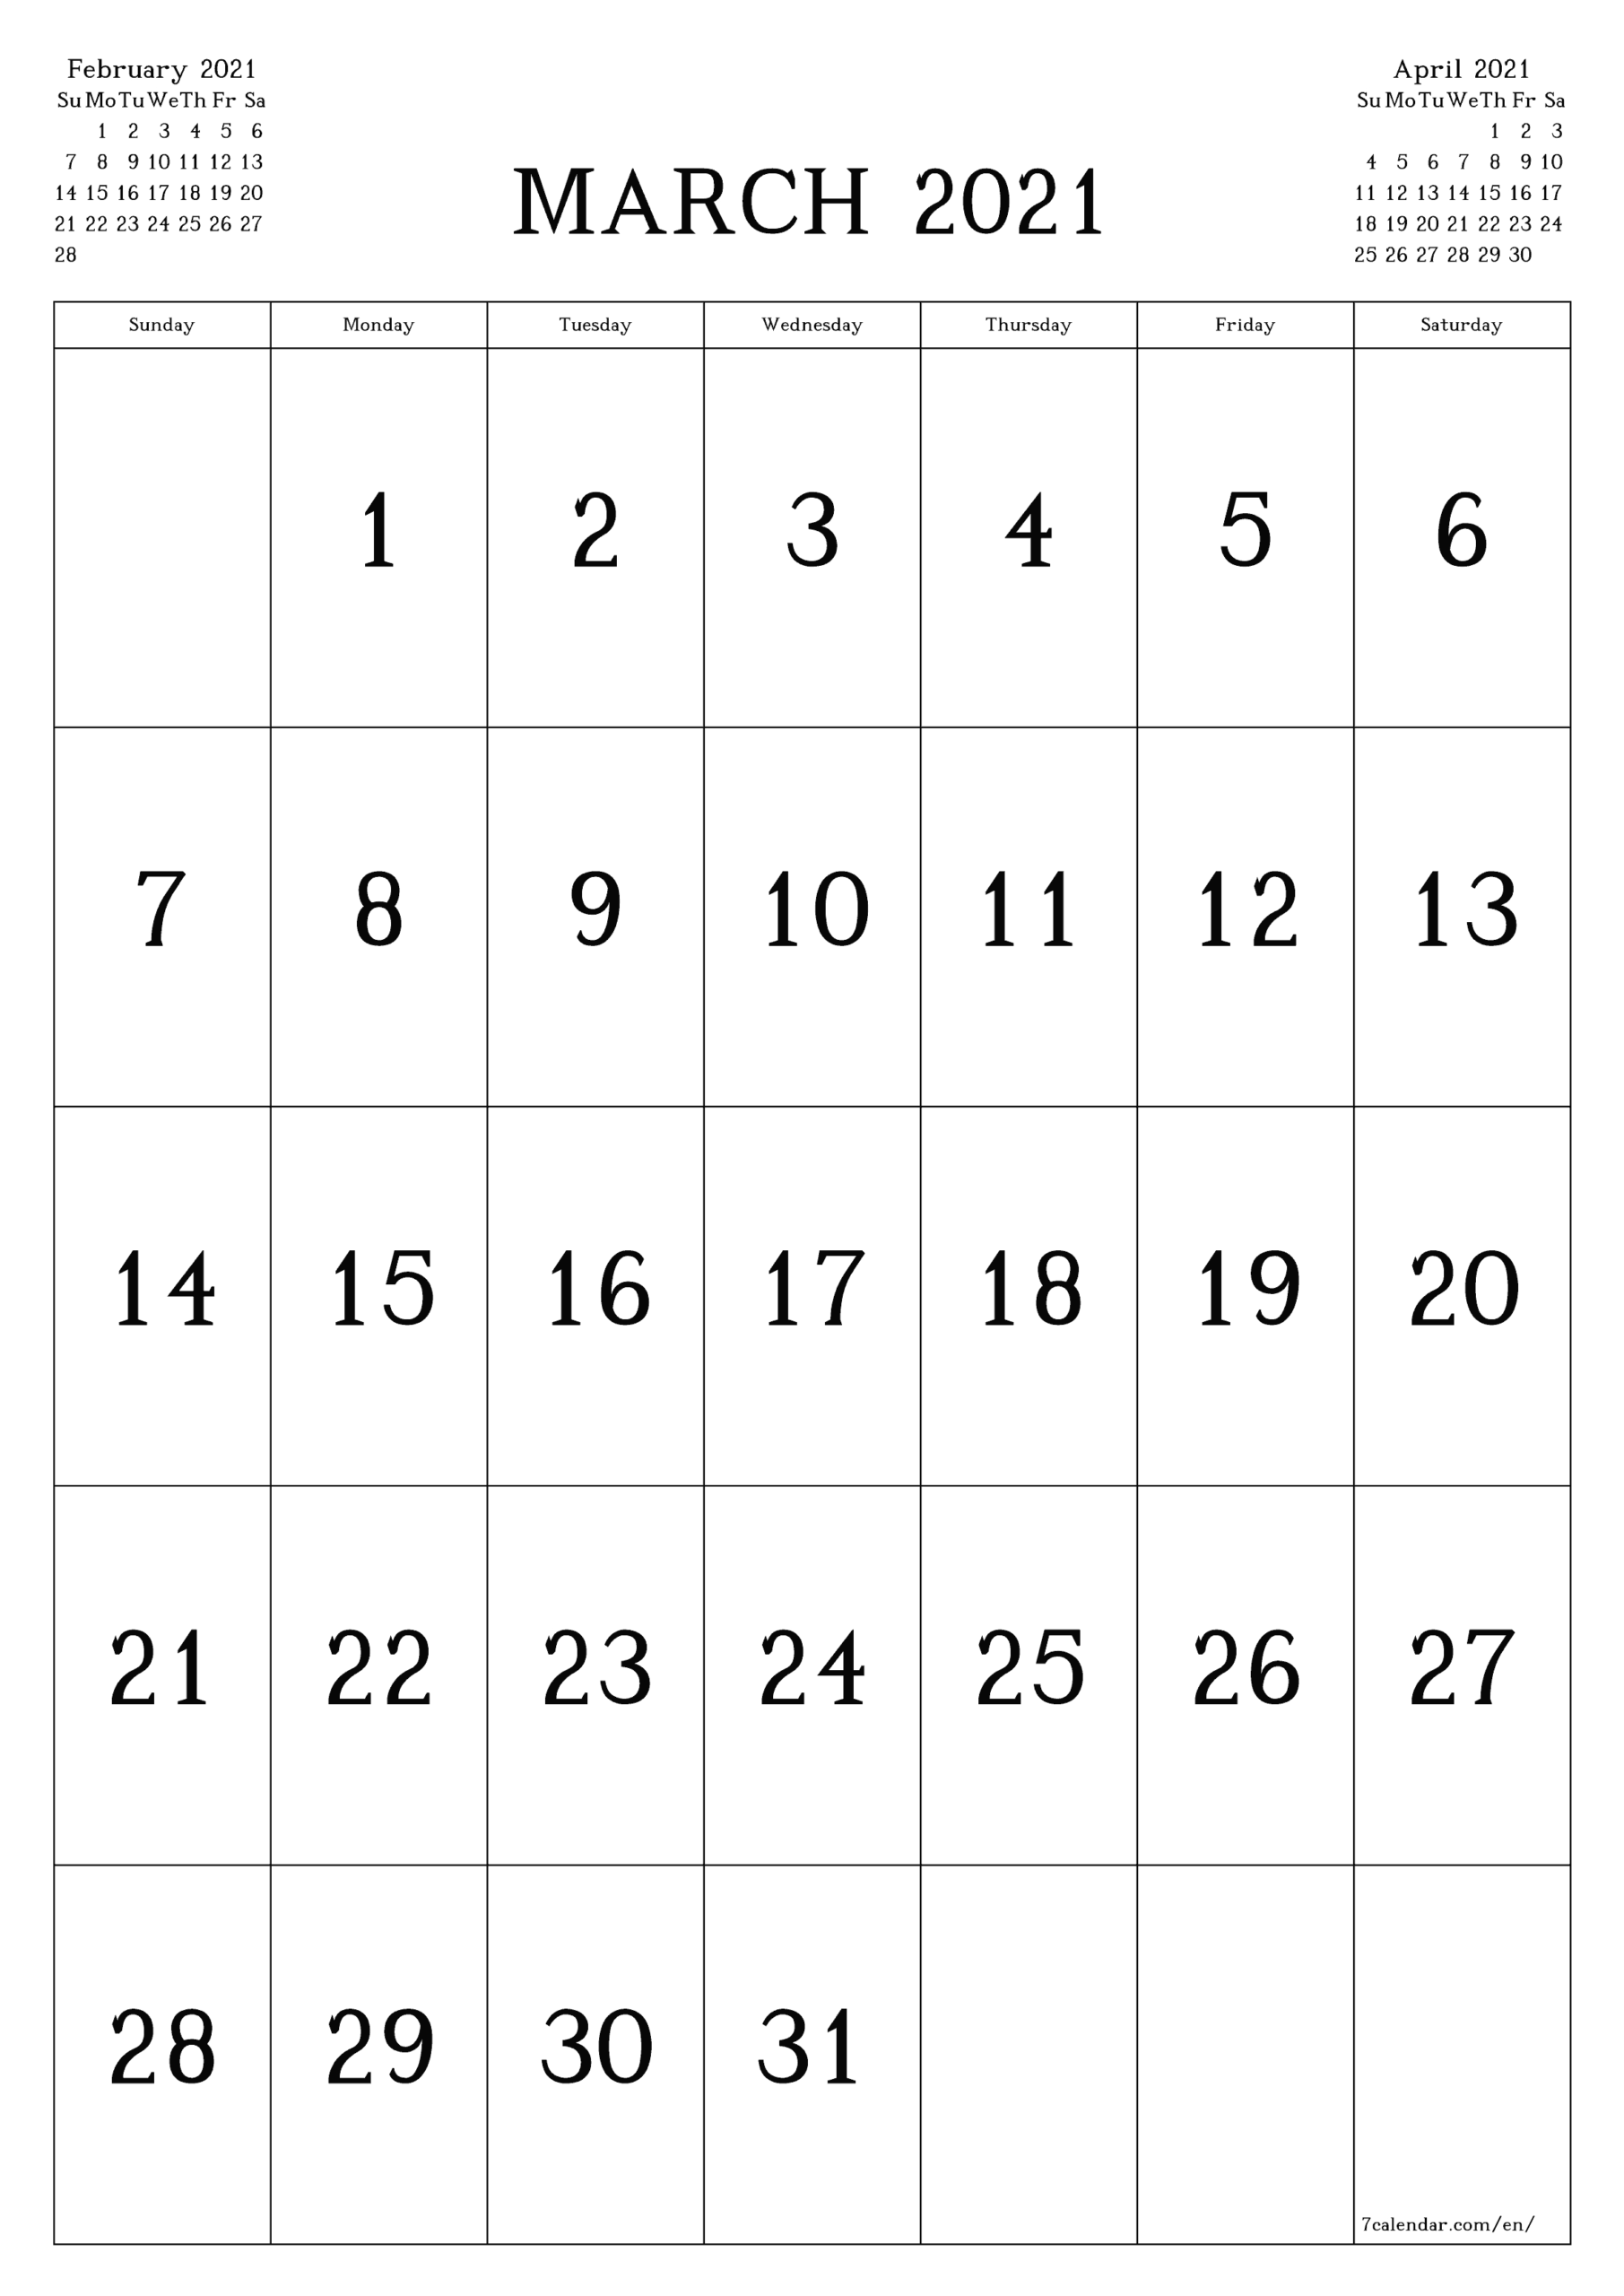 Free Printable Monthly Calendar March 2021 Printable March with Calendars Michel Zbinden